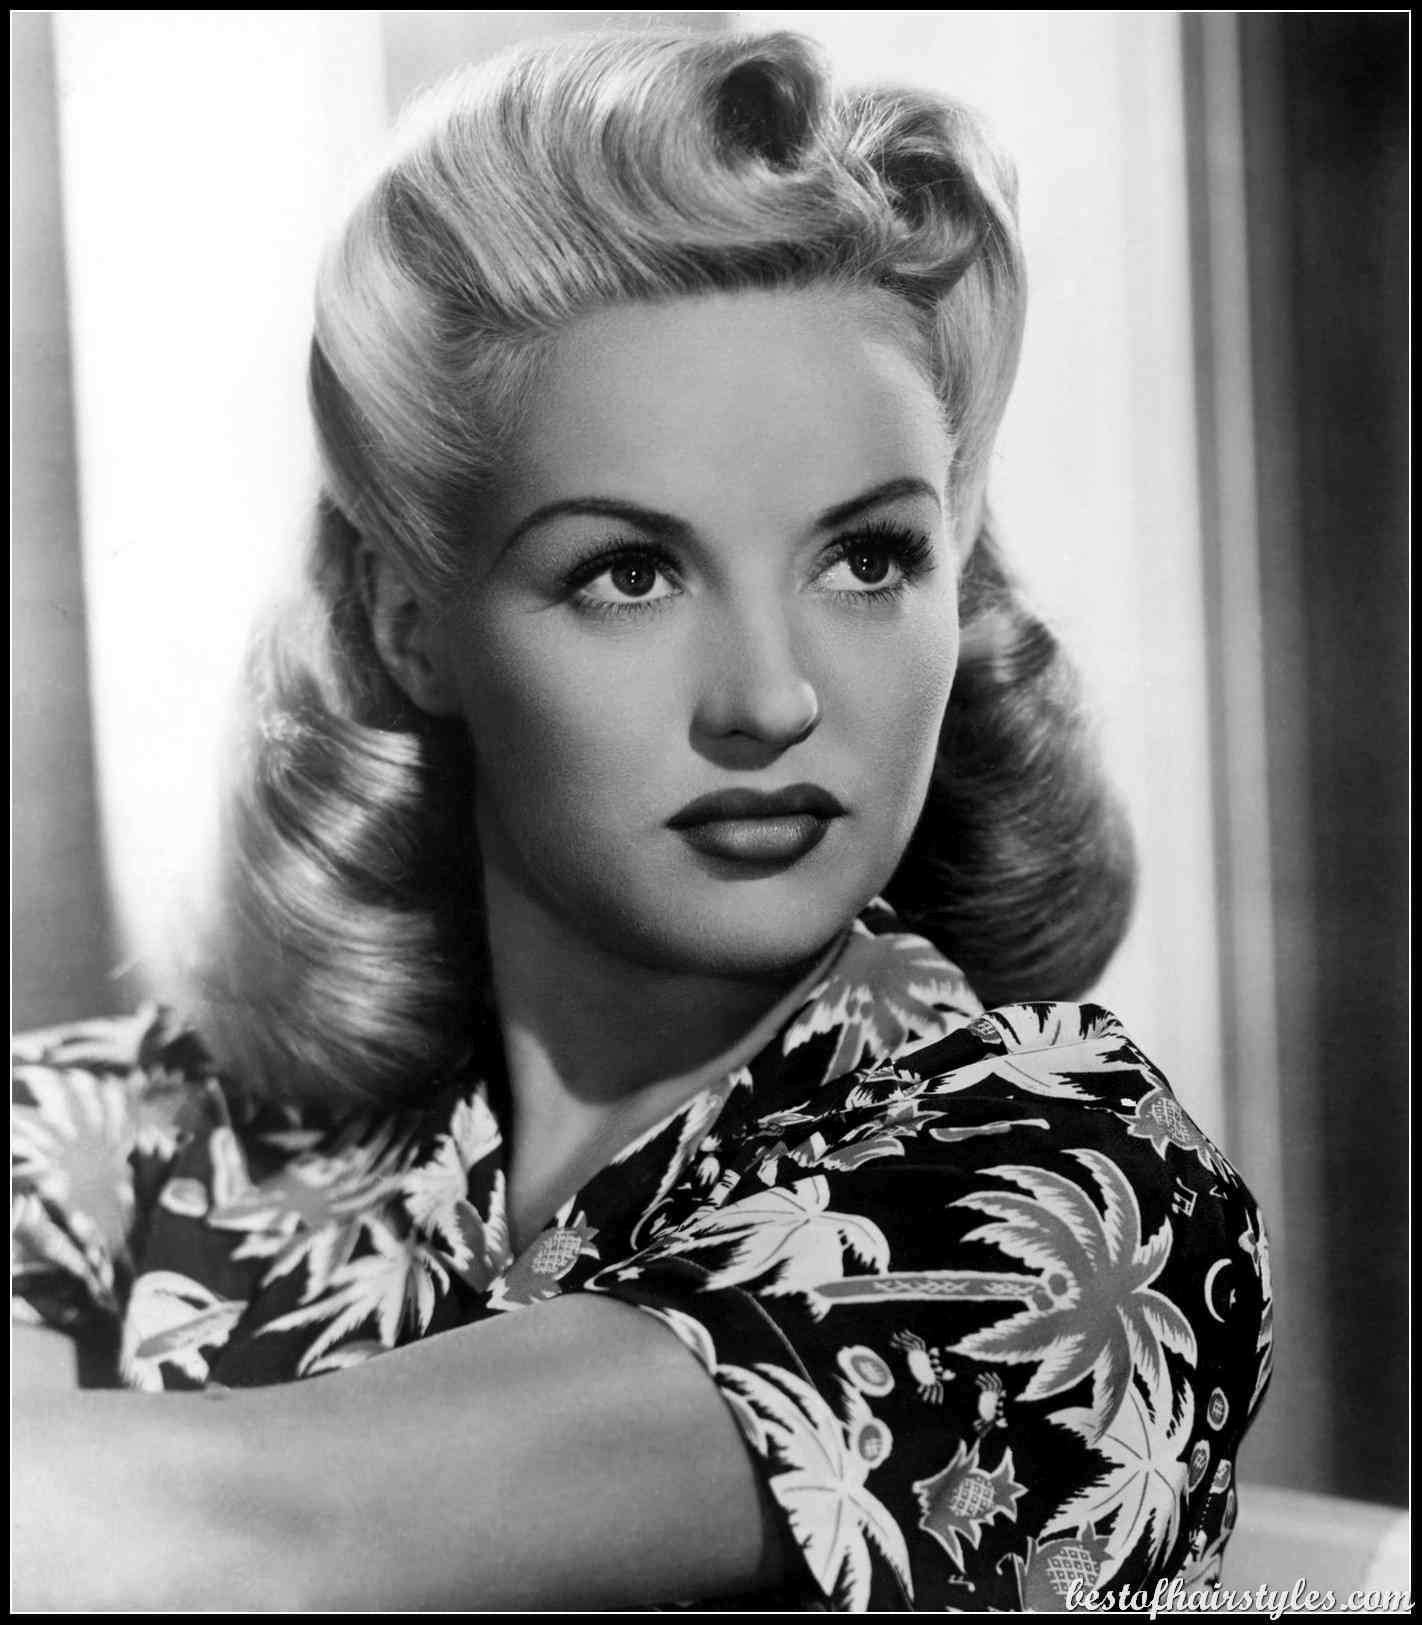 1940 Hairstyles Vintage 1930S Women In Photos  Google Search  Old Hollywood